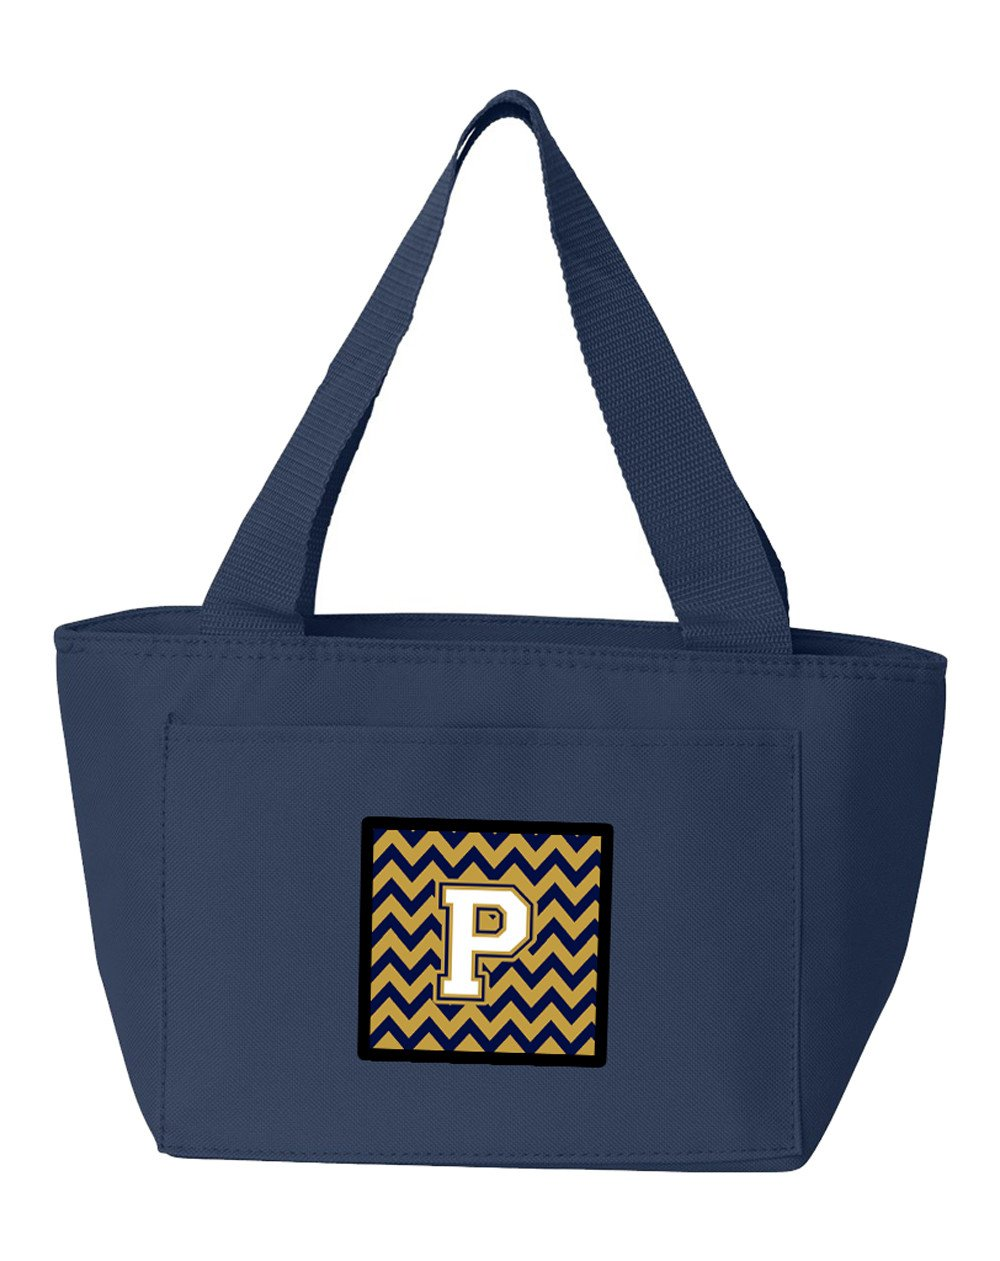 Letter P Chevron Navy Blue and Gold Lunch Bag CJ1057-PNA-8808 by Caroline's Treasures